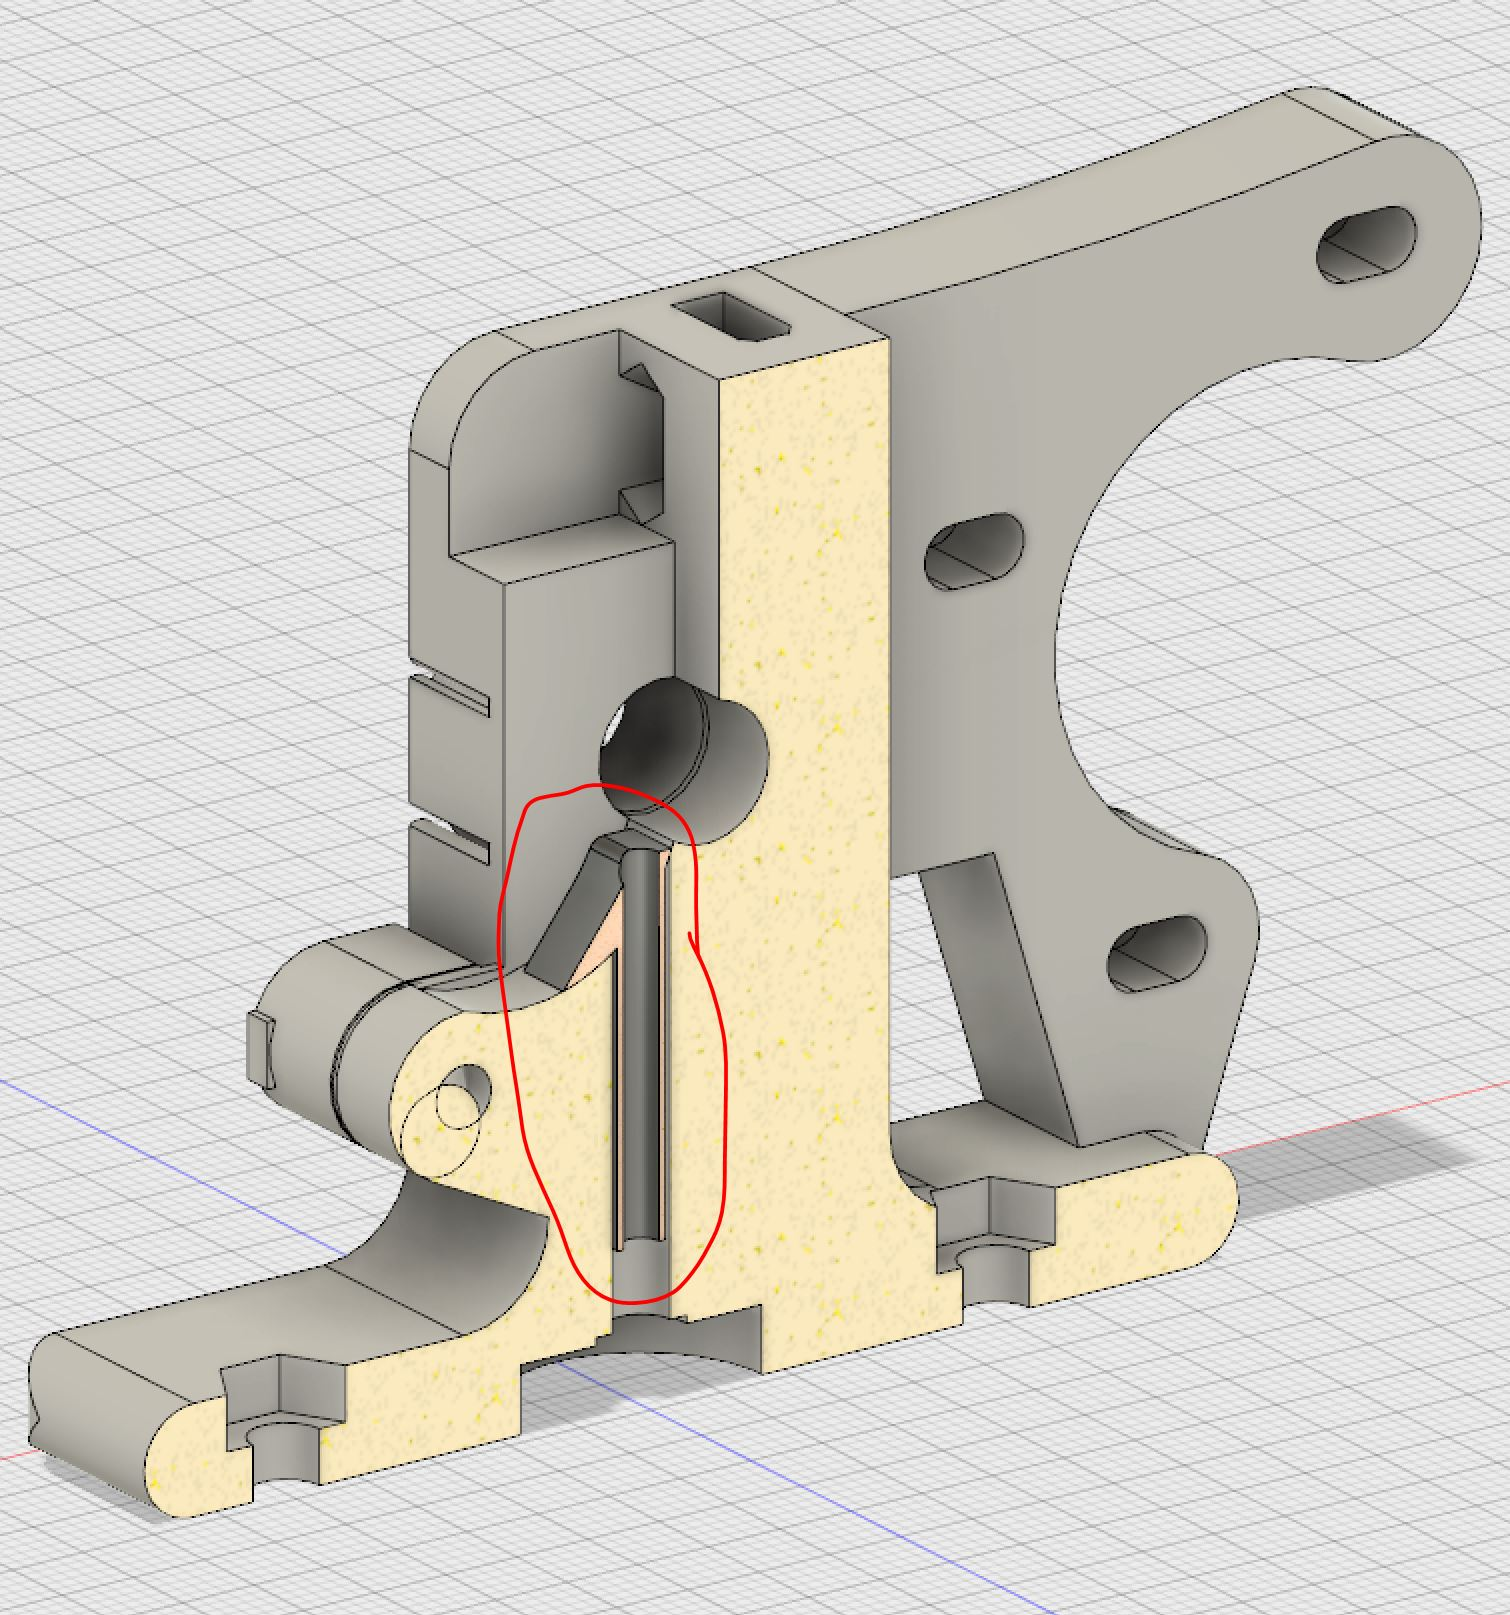 Lulzbot Mini Extruder Body Mod for 1.75mm filament 2.JPG